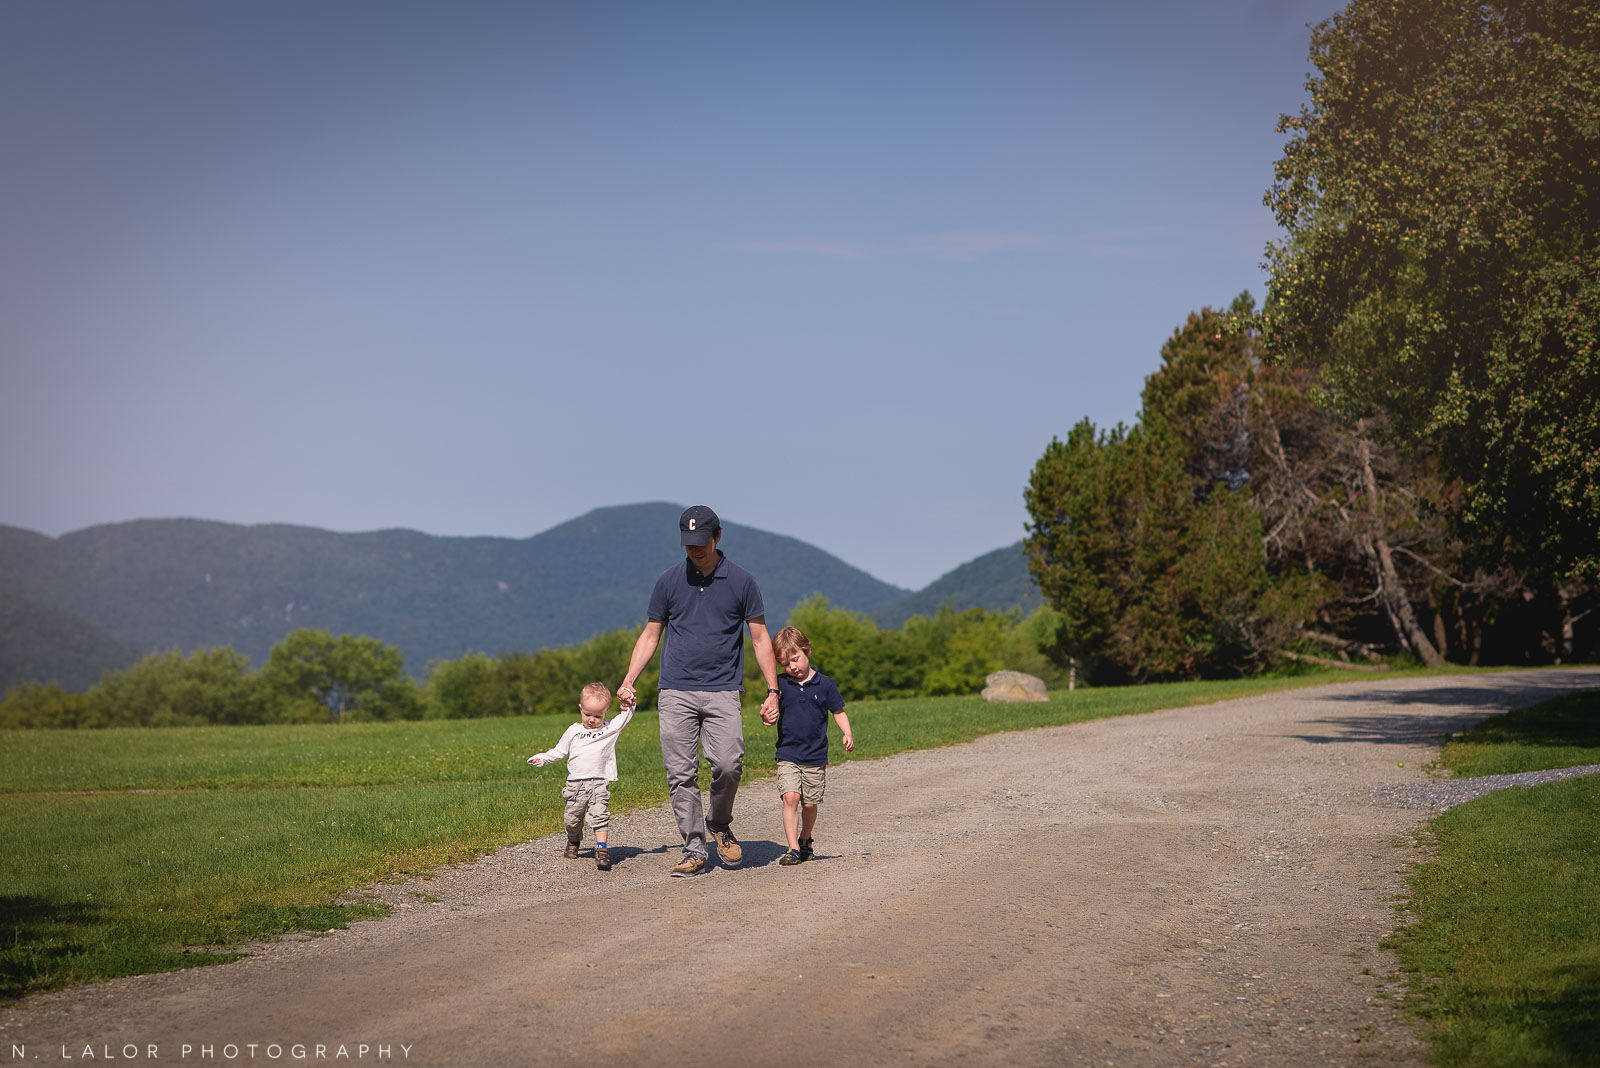 Family vacation at the Trapp Family Lodge in Stowe Vermont. Photo by N. Lalor Photography.